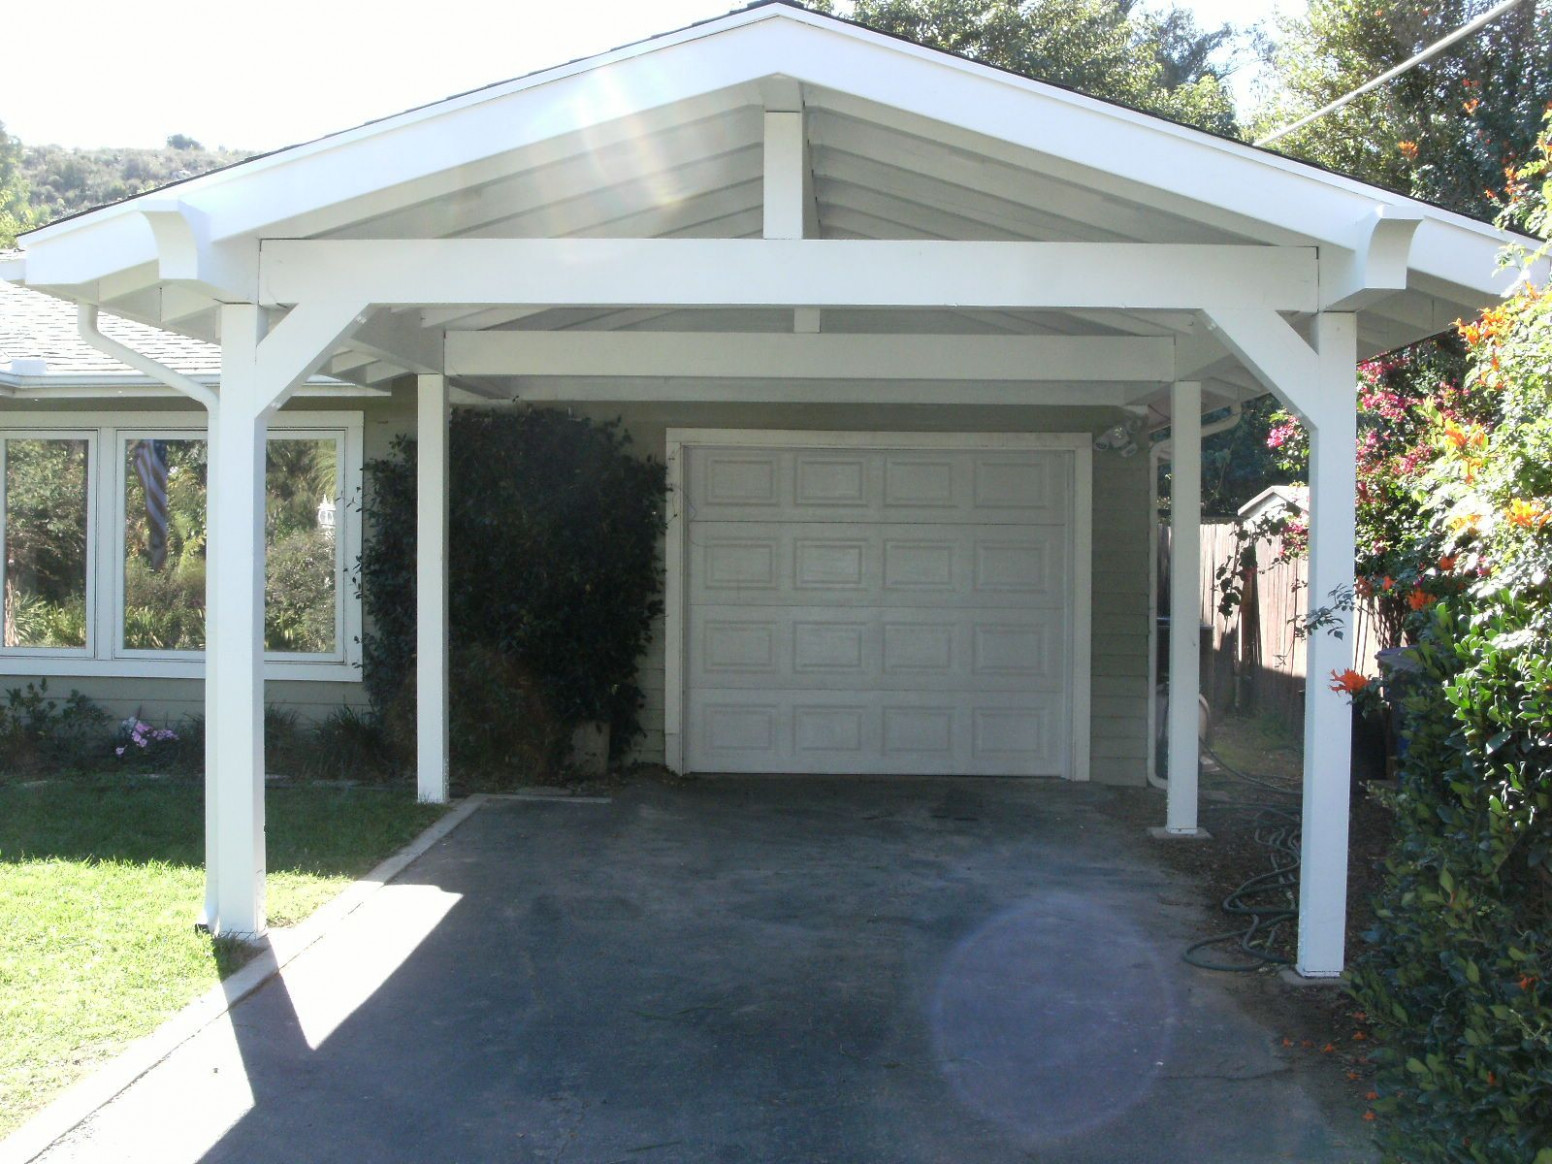 Carport: Garage With Carport How To Add A Carport To Your Garage